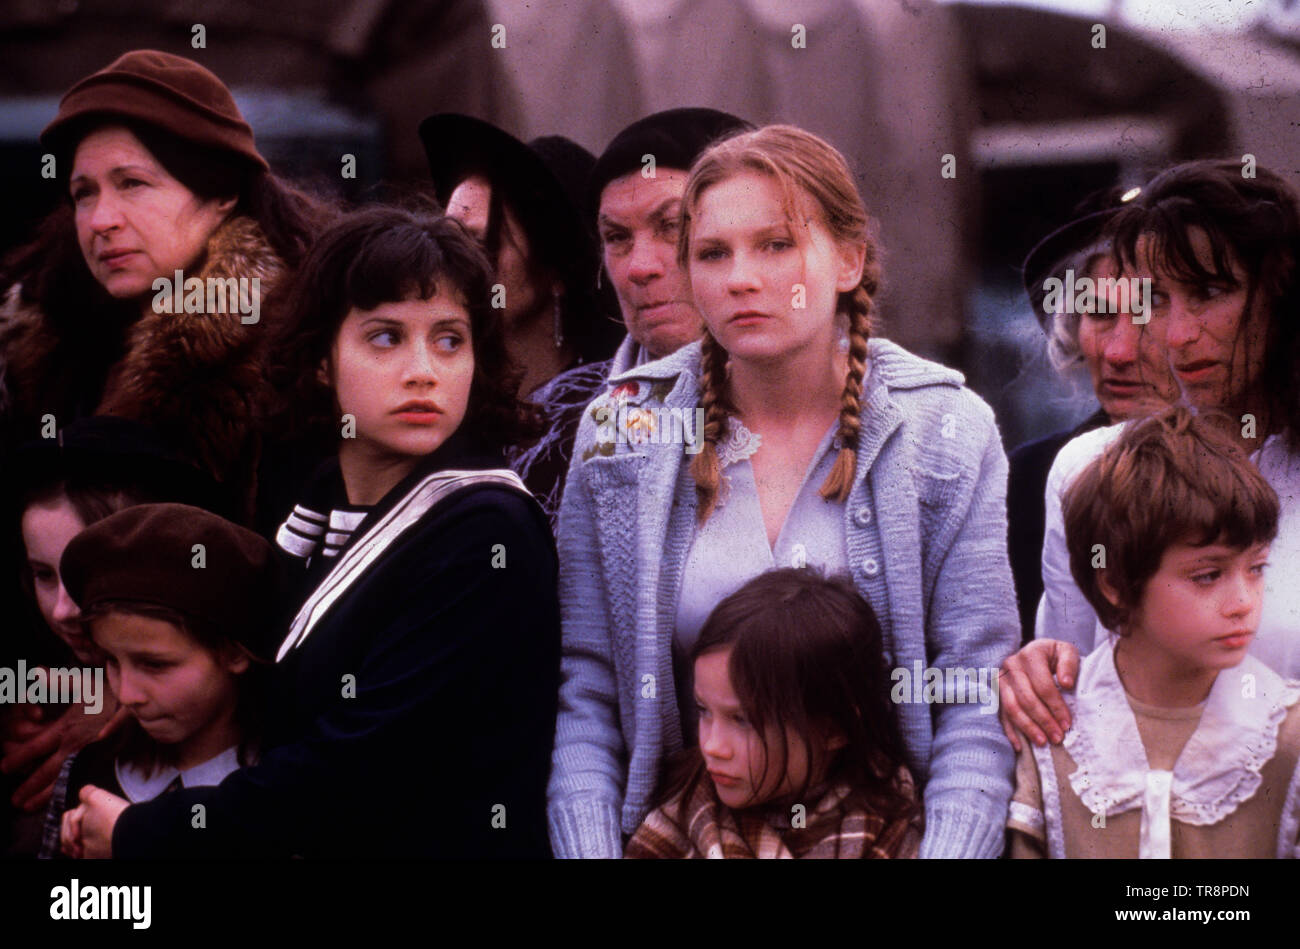 kirsten dunst, brittany murphy, the devil's arithmetic, 1999 - Stock Image